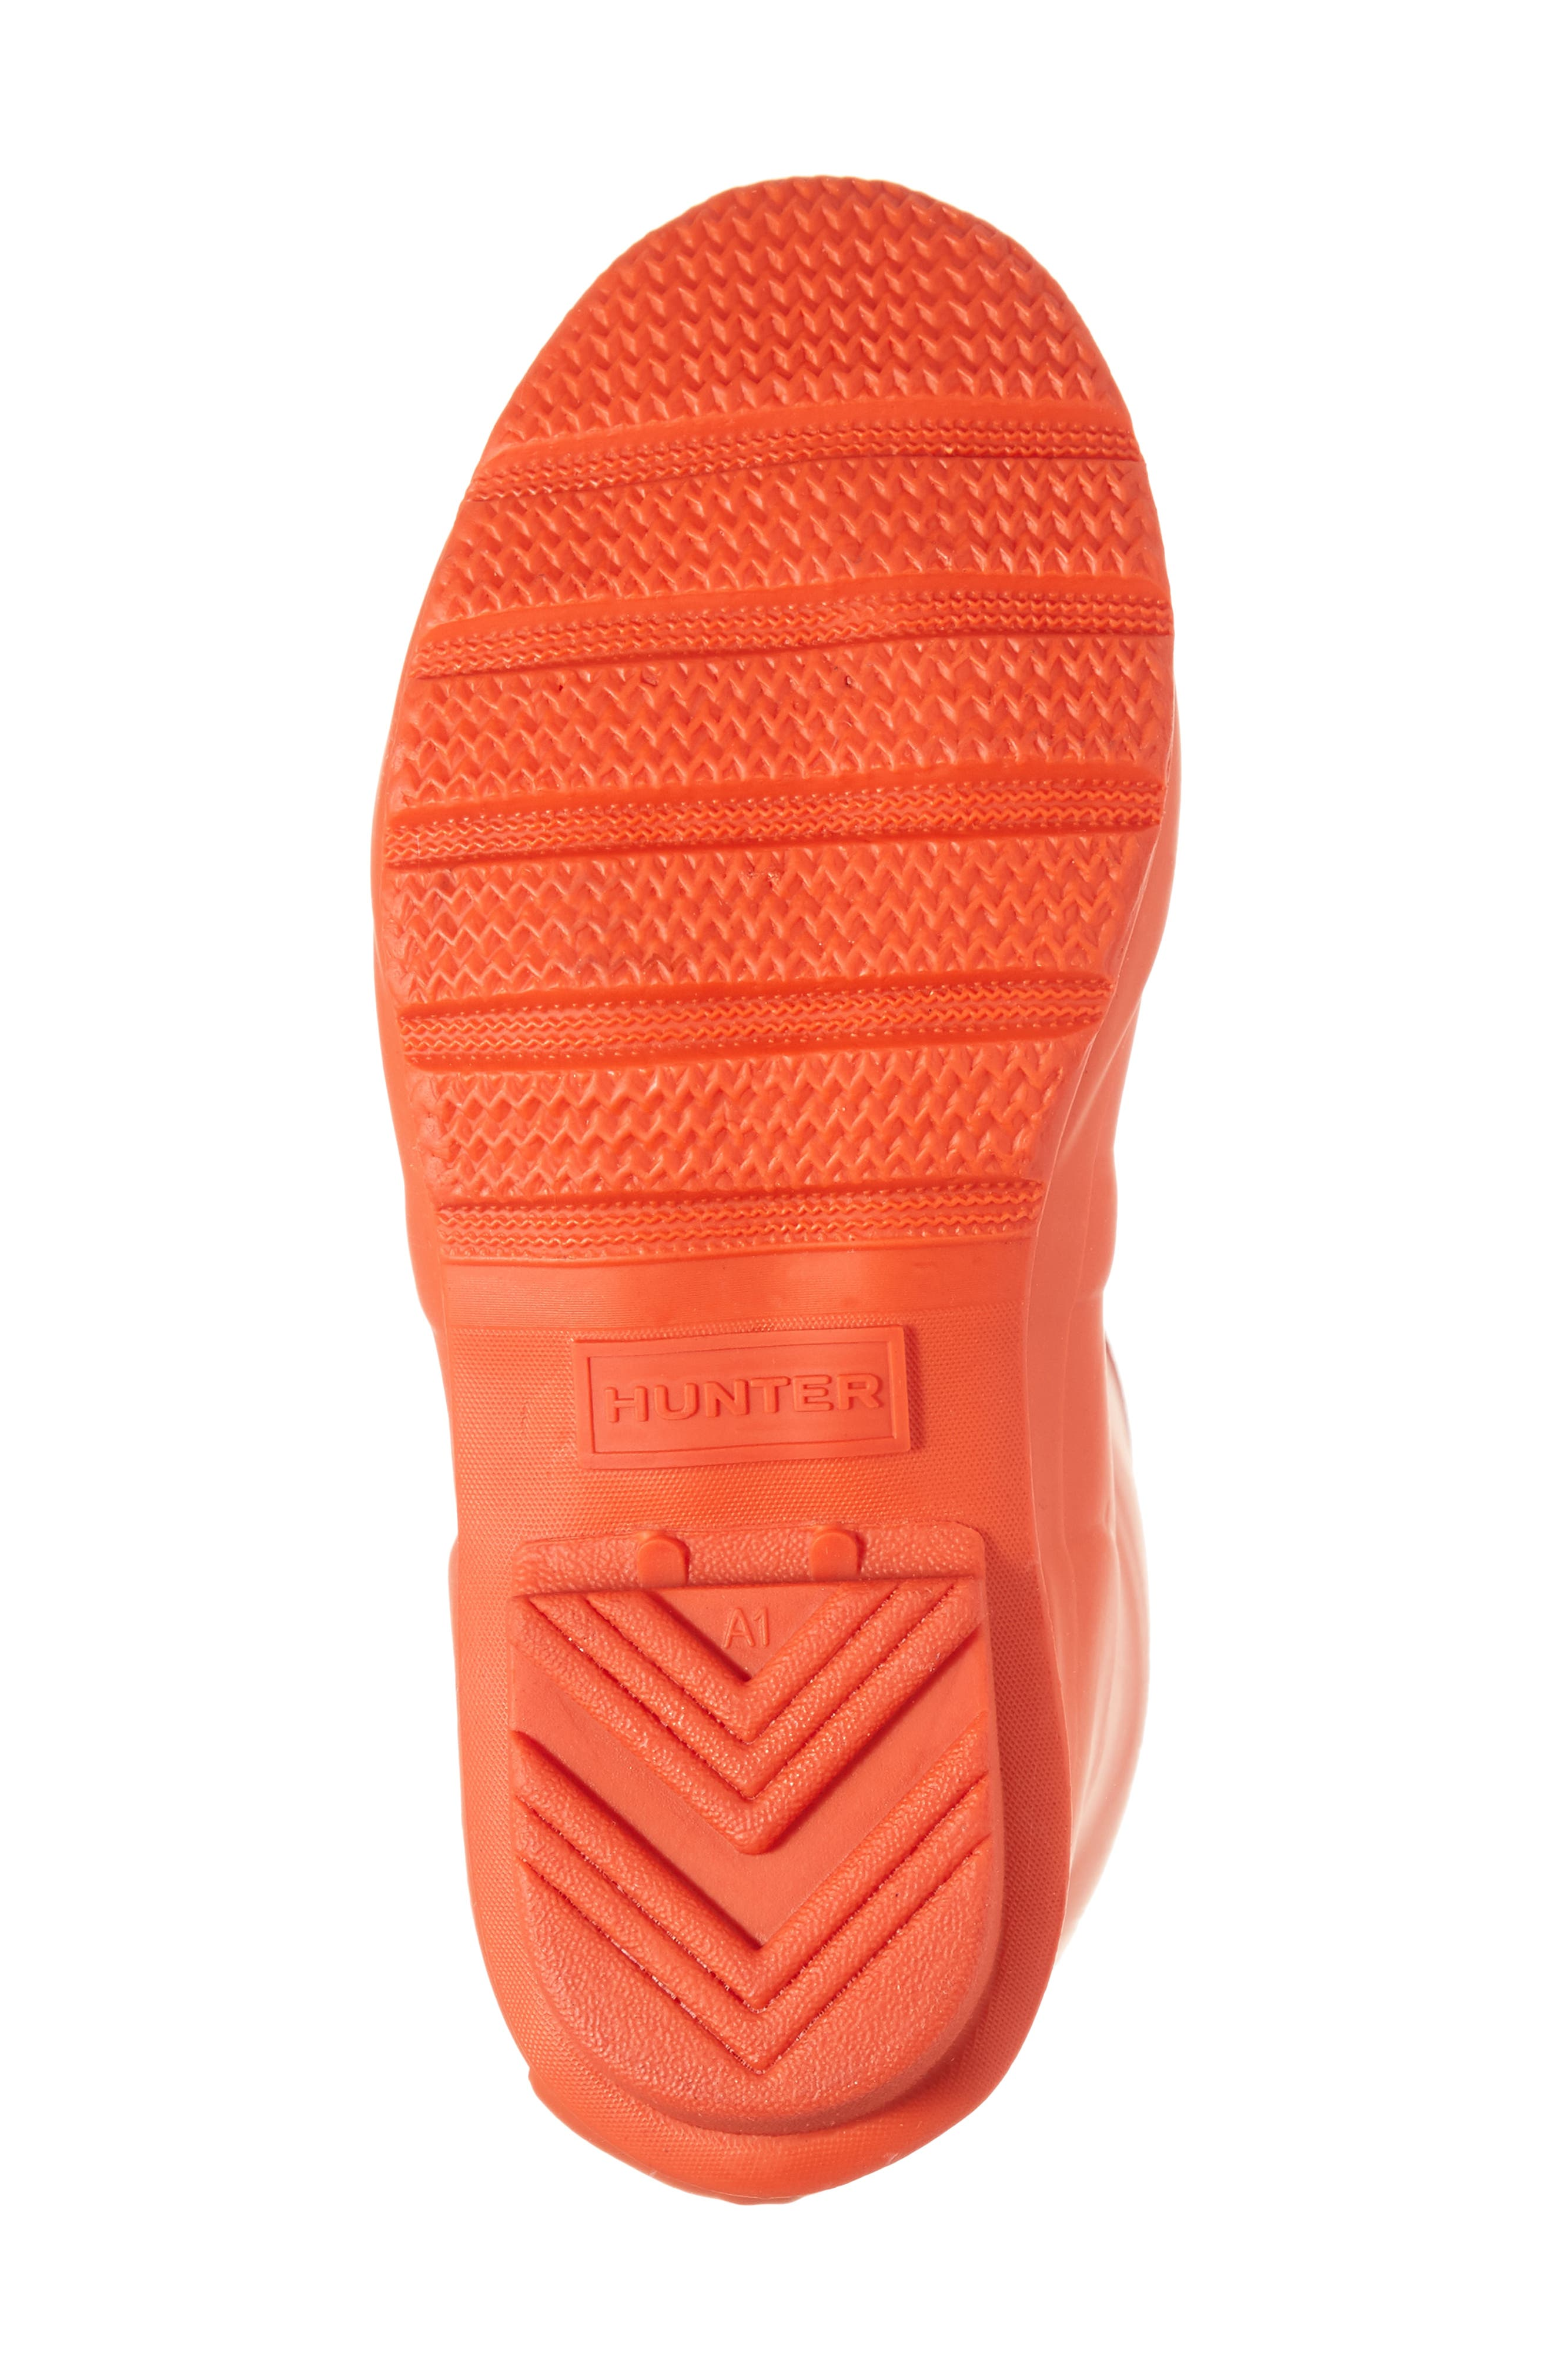 'Original' Rain Boot,                             Alternate thumbnail 6, color,                             Orange